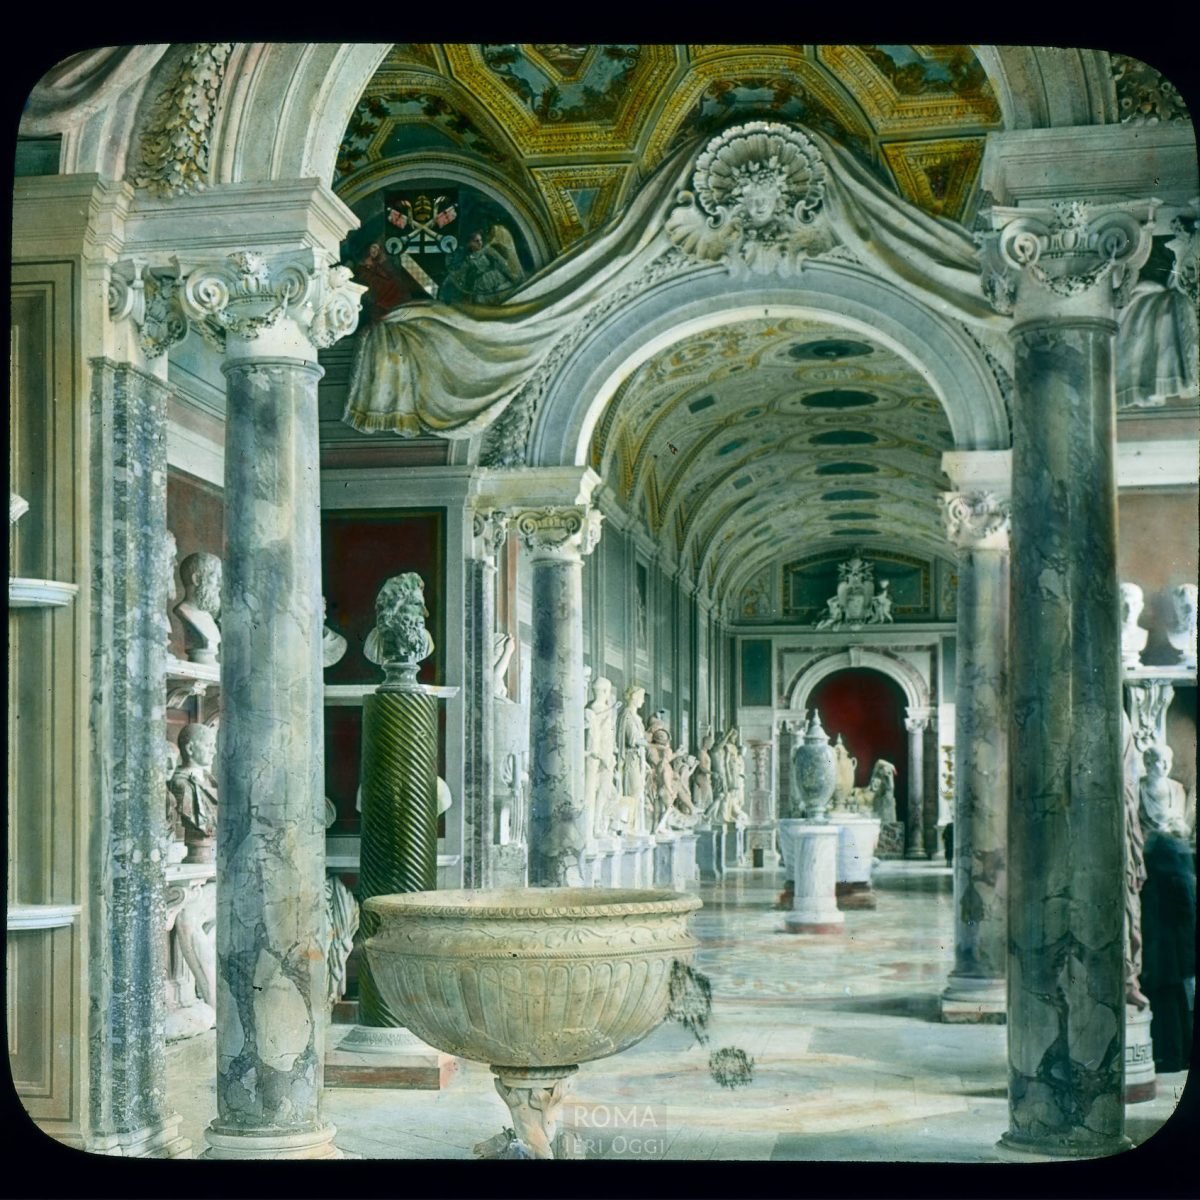 Vatican City. Vatican Museum, Museo Pio-Clementino: interior, Gallery of the Statues View in tinted lantern slide, ca. 1919-1938. The museum dates from ca. 1771.